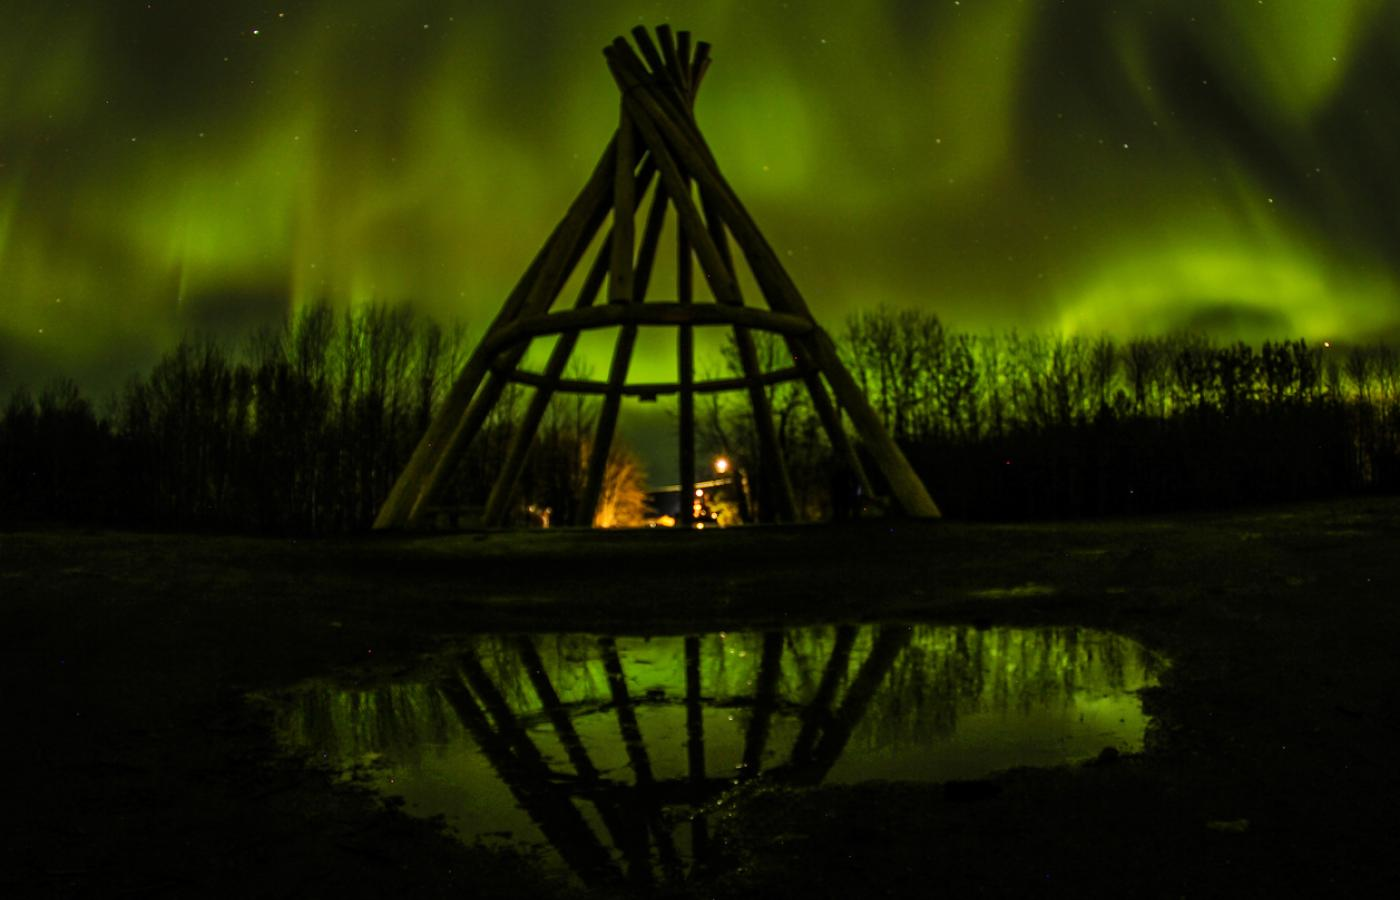 Fort Simpson home to world's tallest wooden teepee